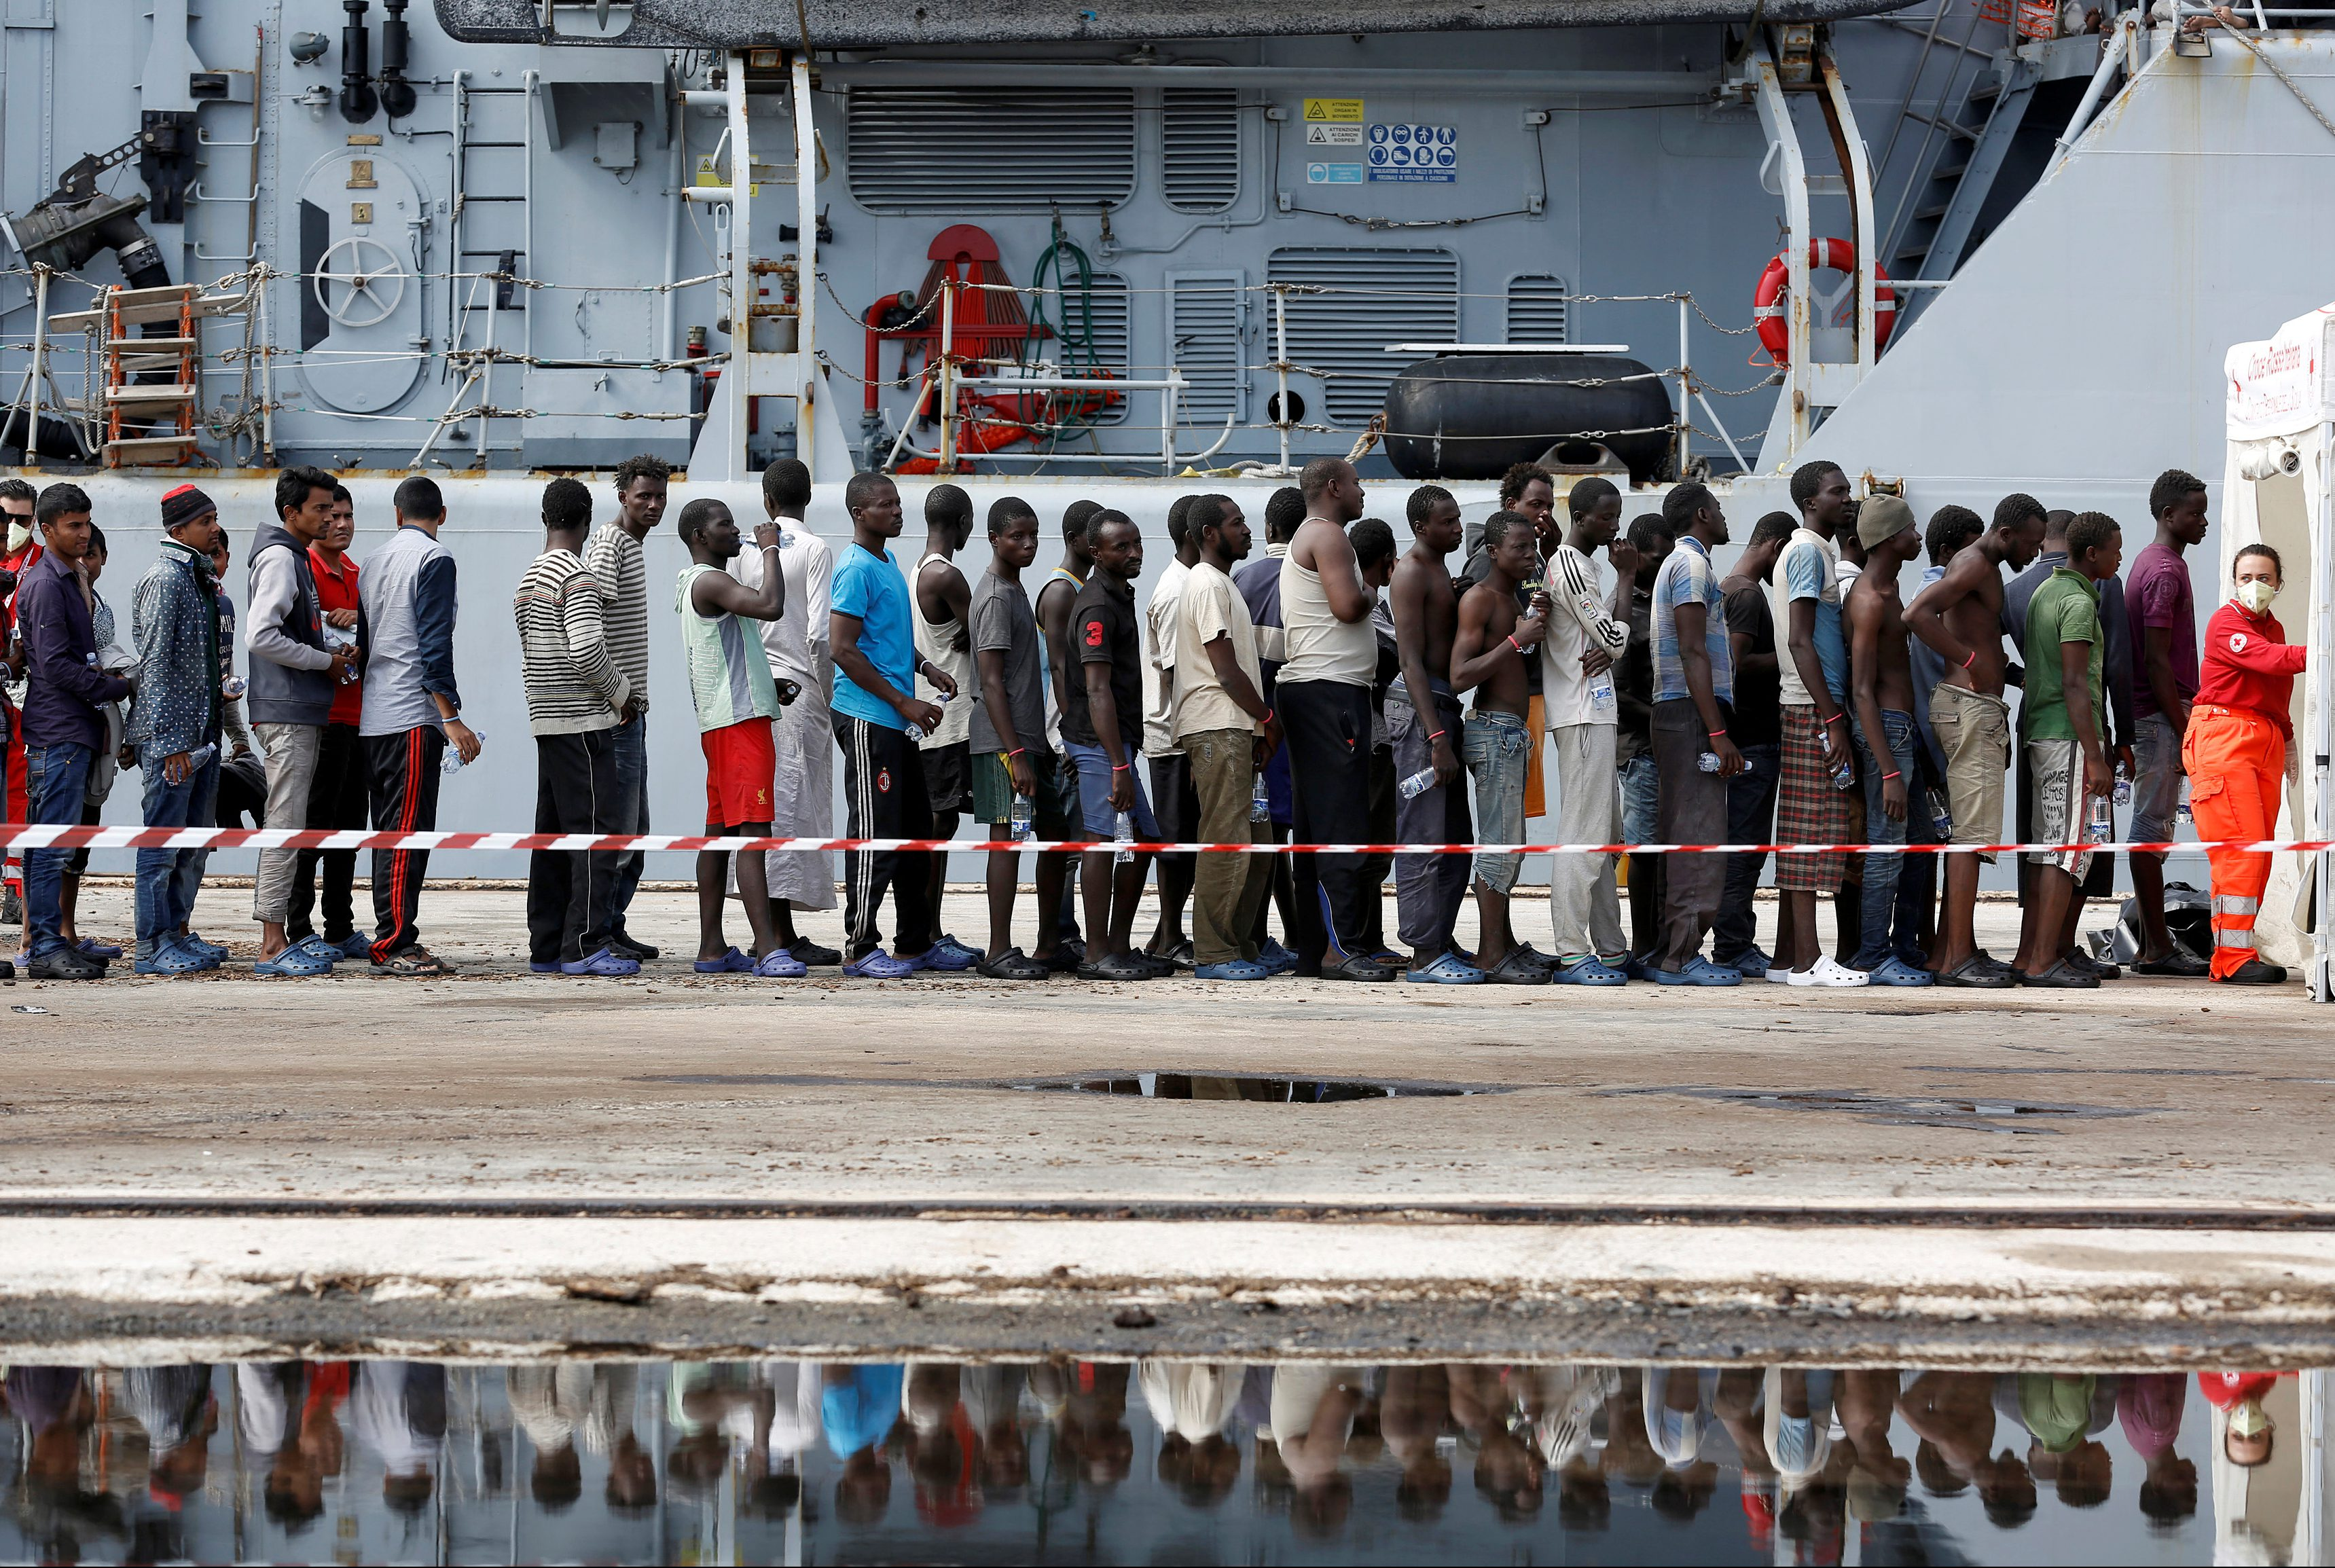 Migrants stand in line after disembarking from the Italian Navy vessel Bersagliare at the Sicilian port of Augusta, Italy, September 16, 2016.